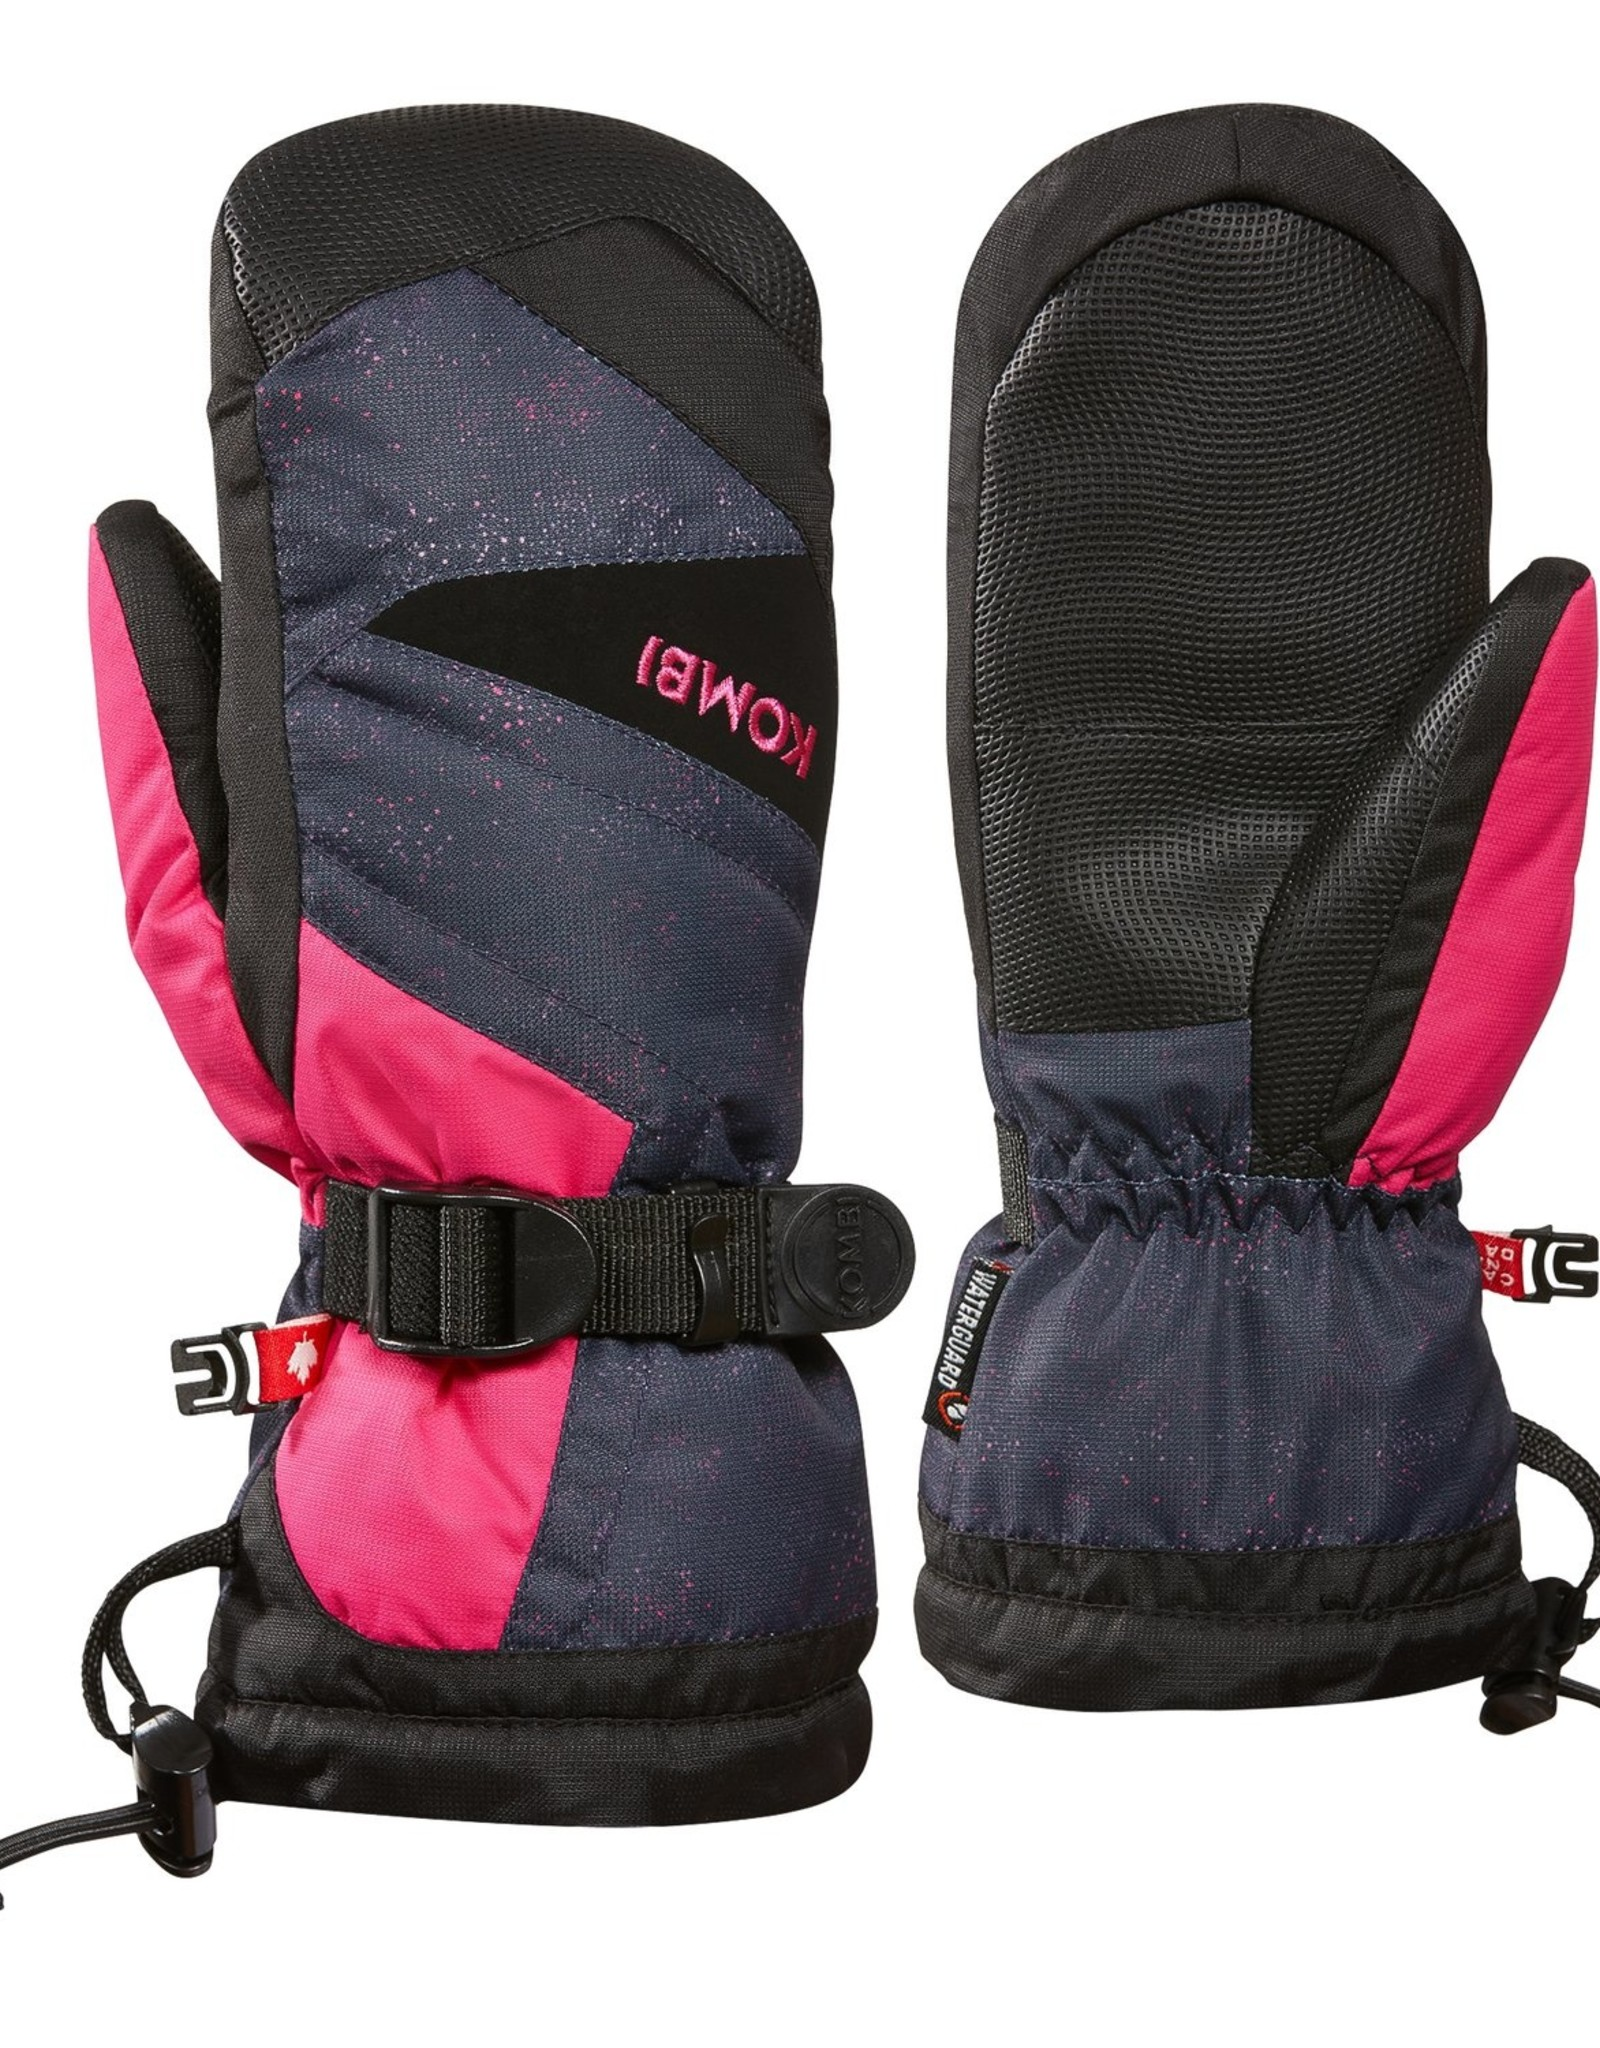 Kombi The Original Jr Mitt -W2020